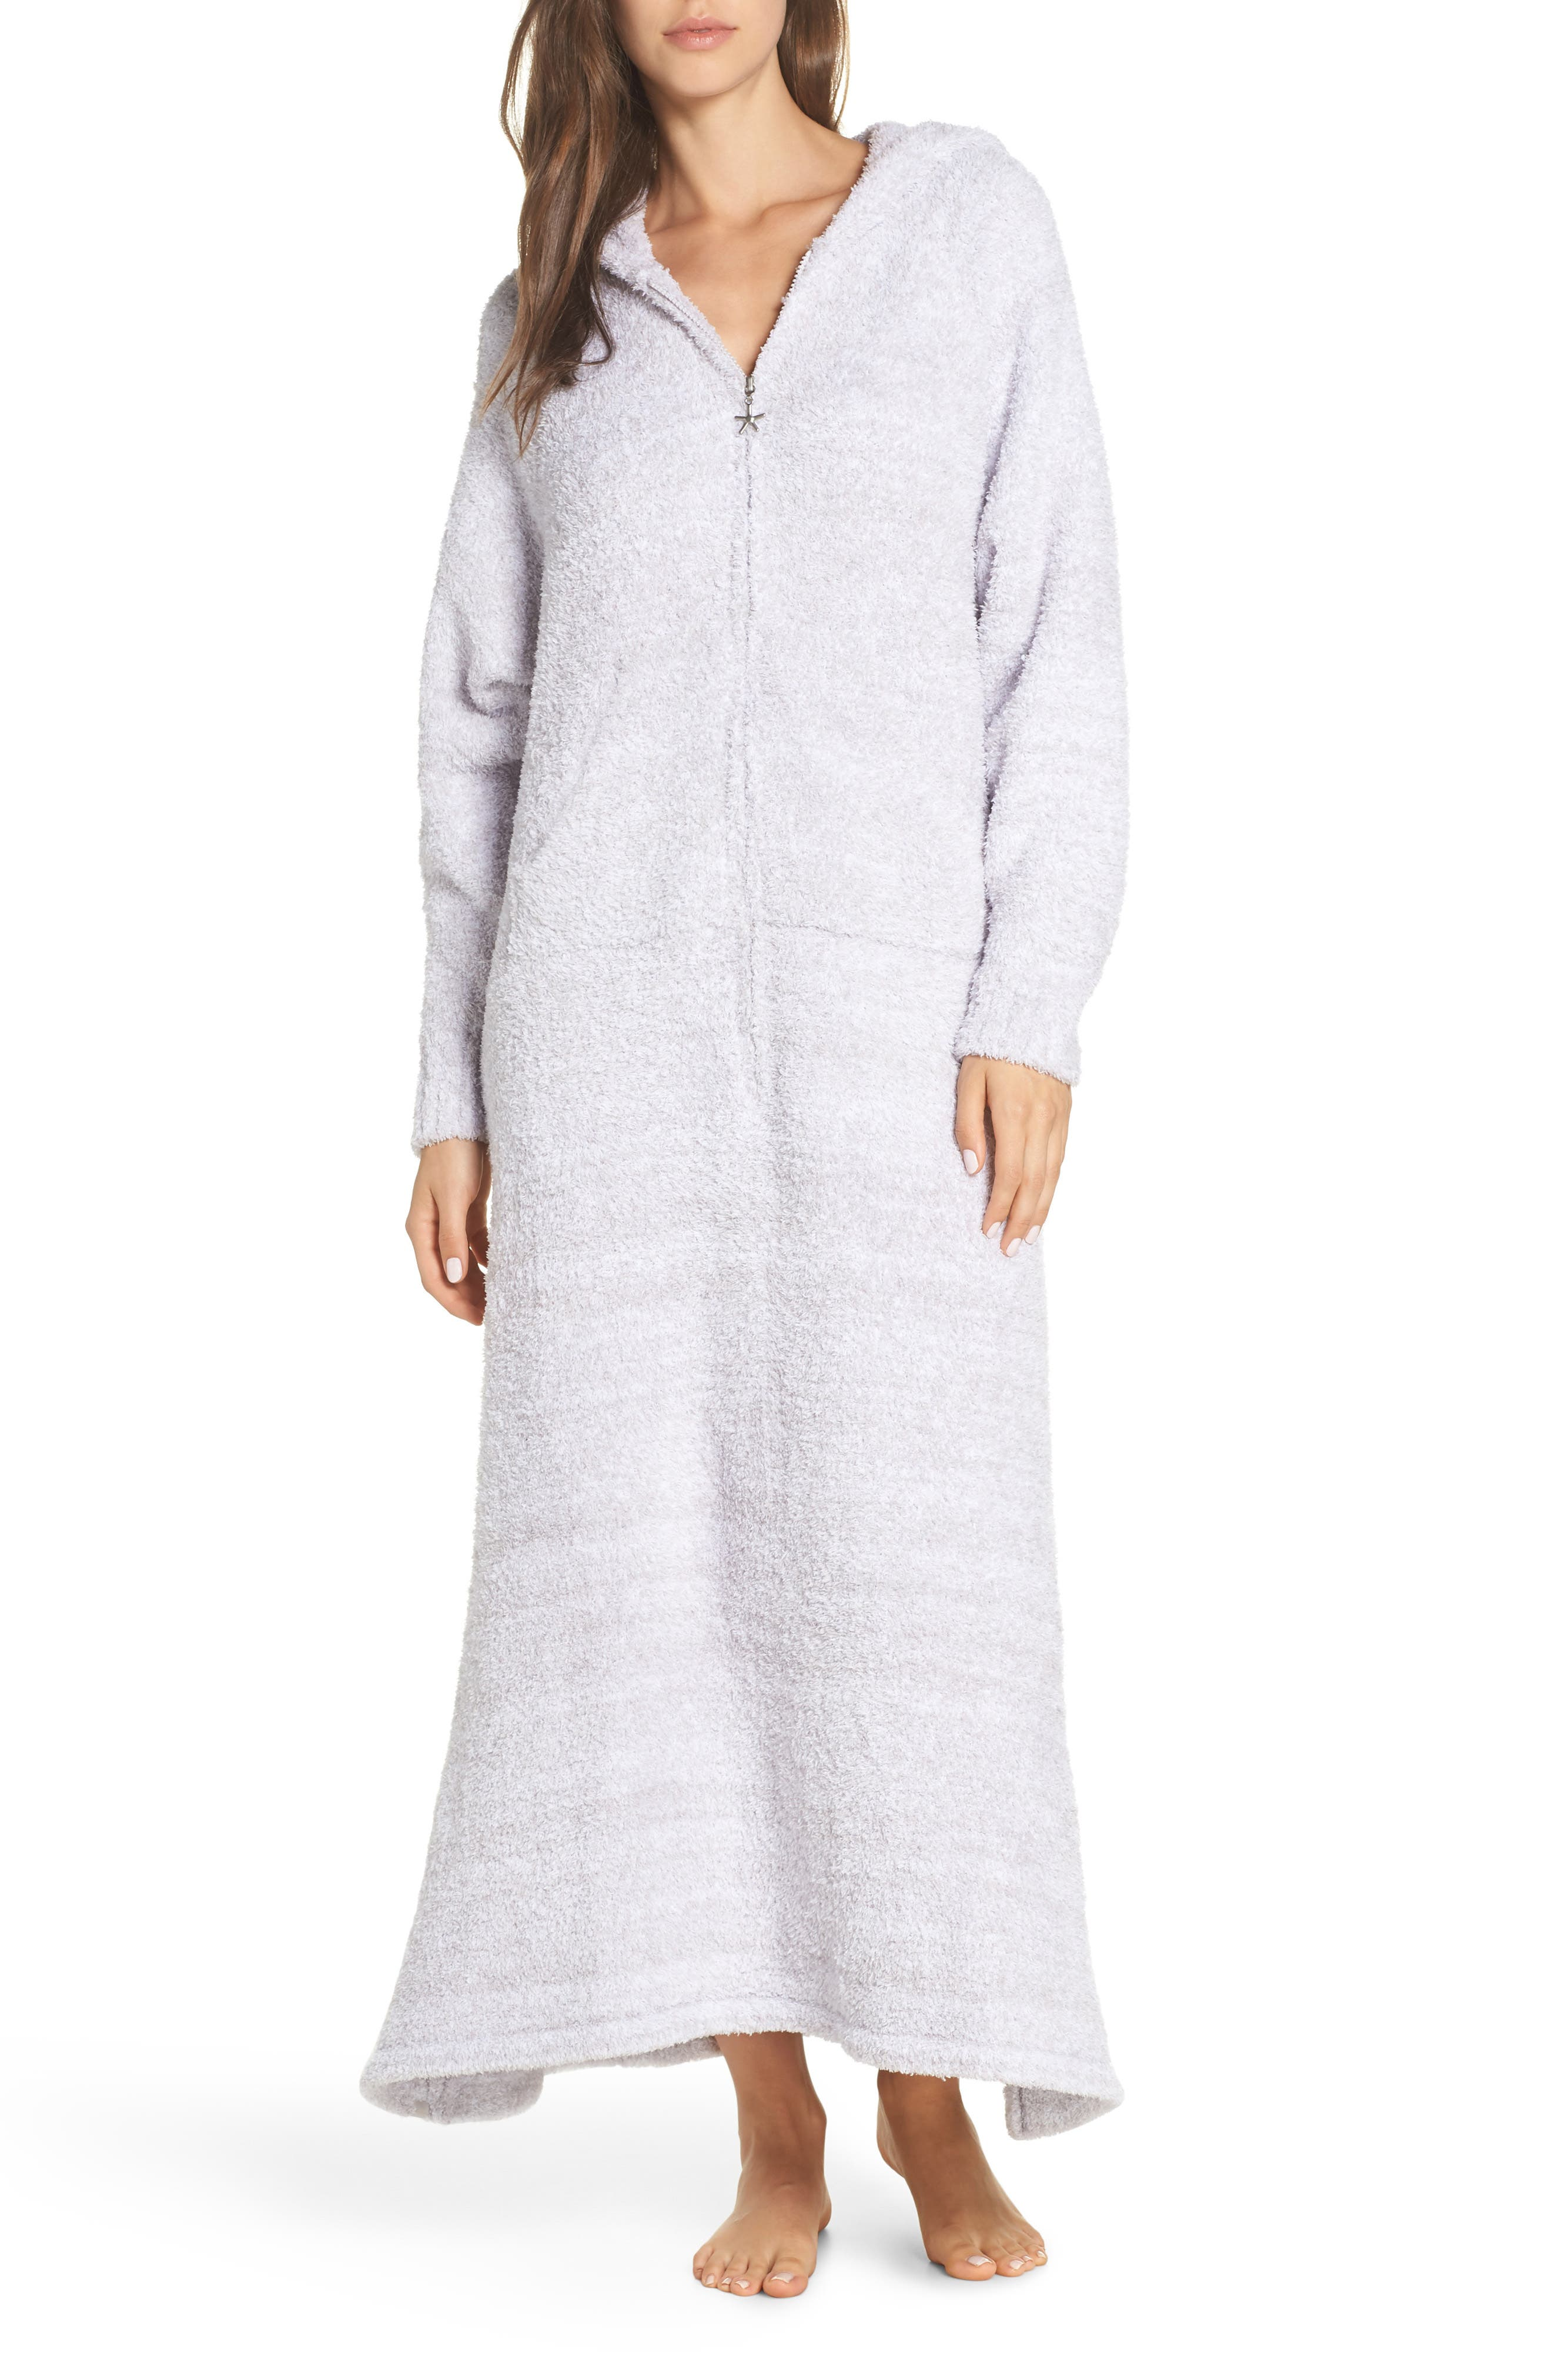 BAREFOOT DREAMS<SUP>®</SUP>, CozyChic<sup>®</sup> Hooded Zip Robe, Main thumbnail 1, color, OYSTER/ WHITE